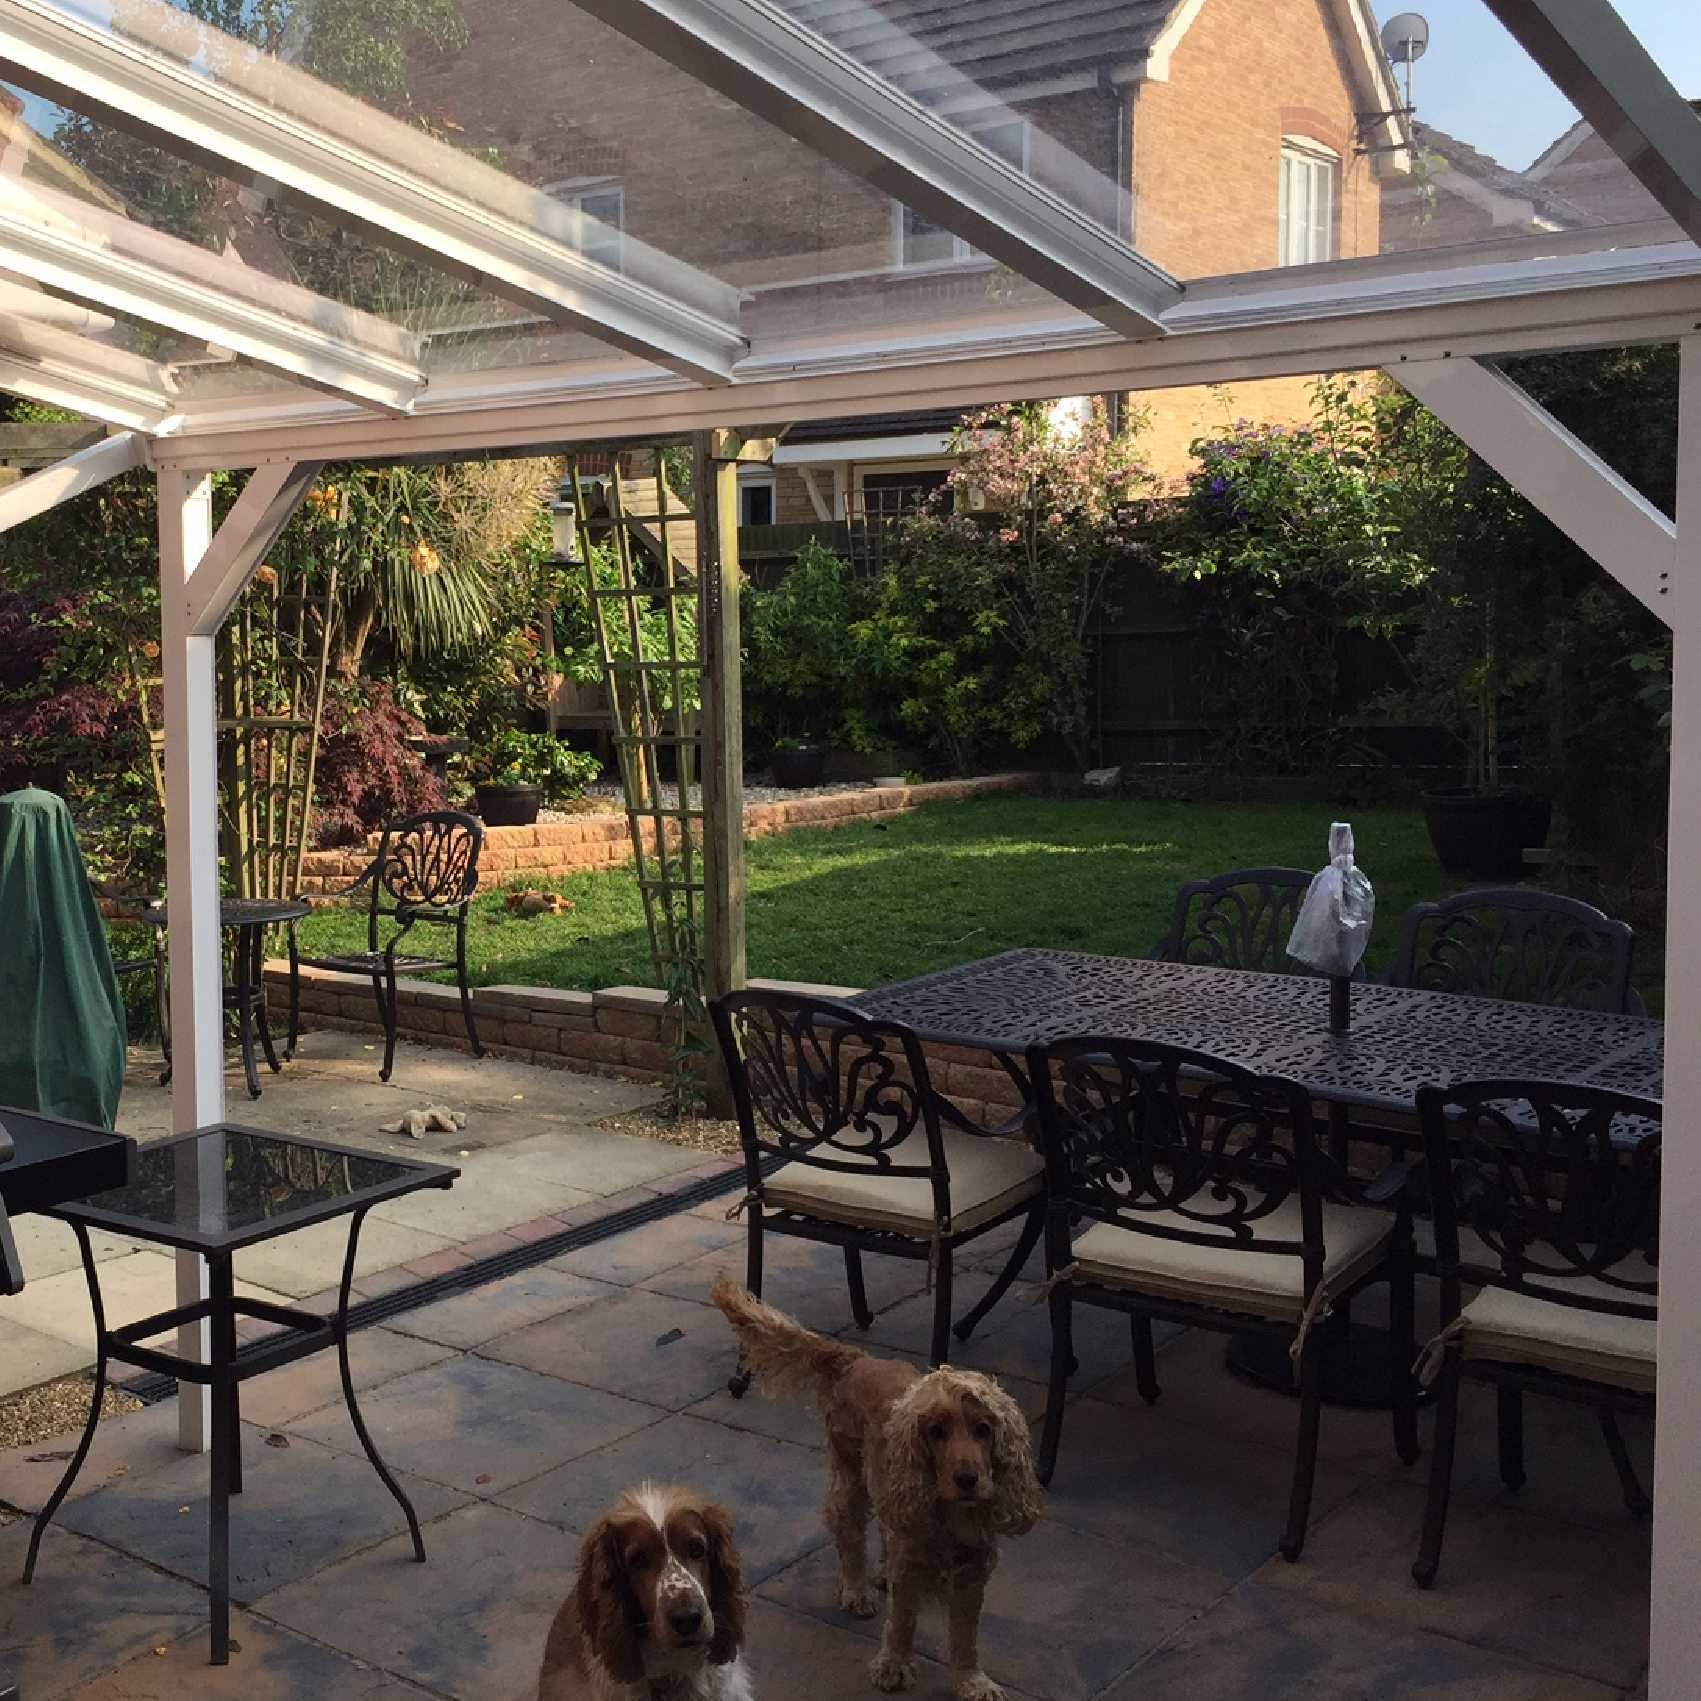 Affordable Omega Smart Lean-To Canopy with 6mm Glass Clear Plate Polycarbonate Glazing - 9.8m (W) x 2.5m (P), (5) Supporting Posts